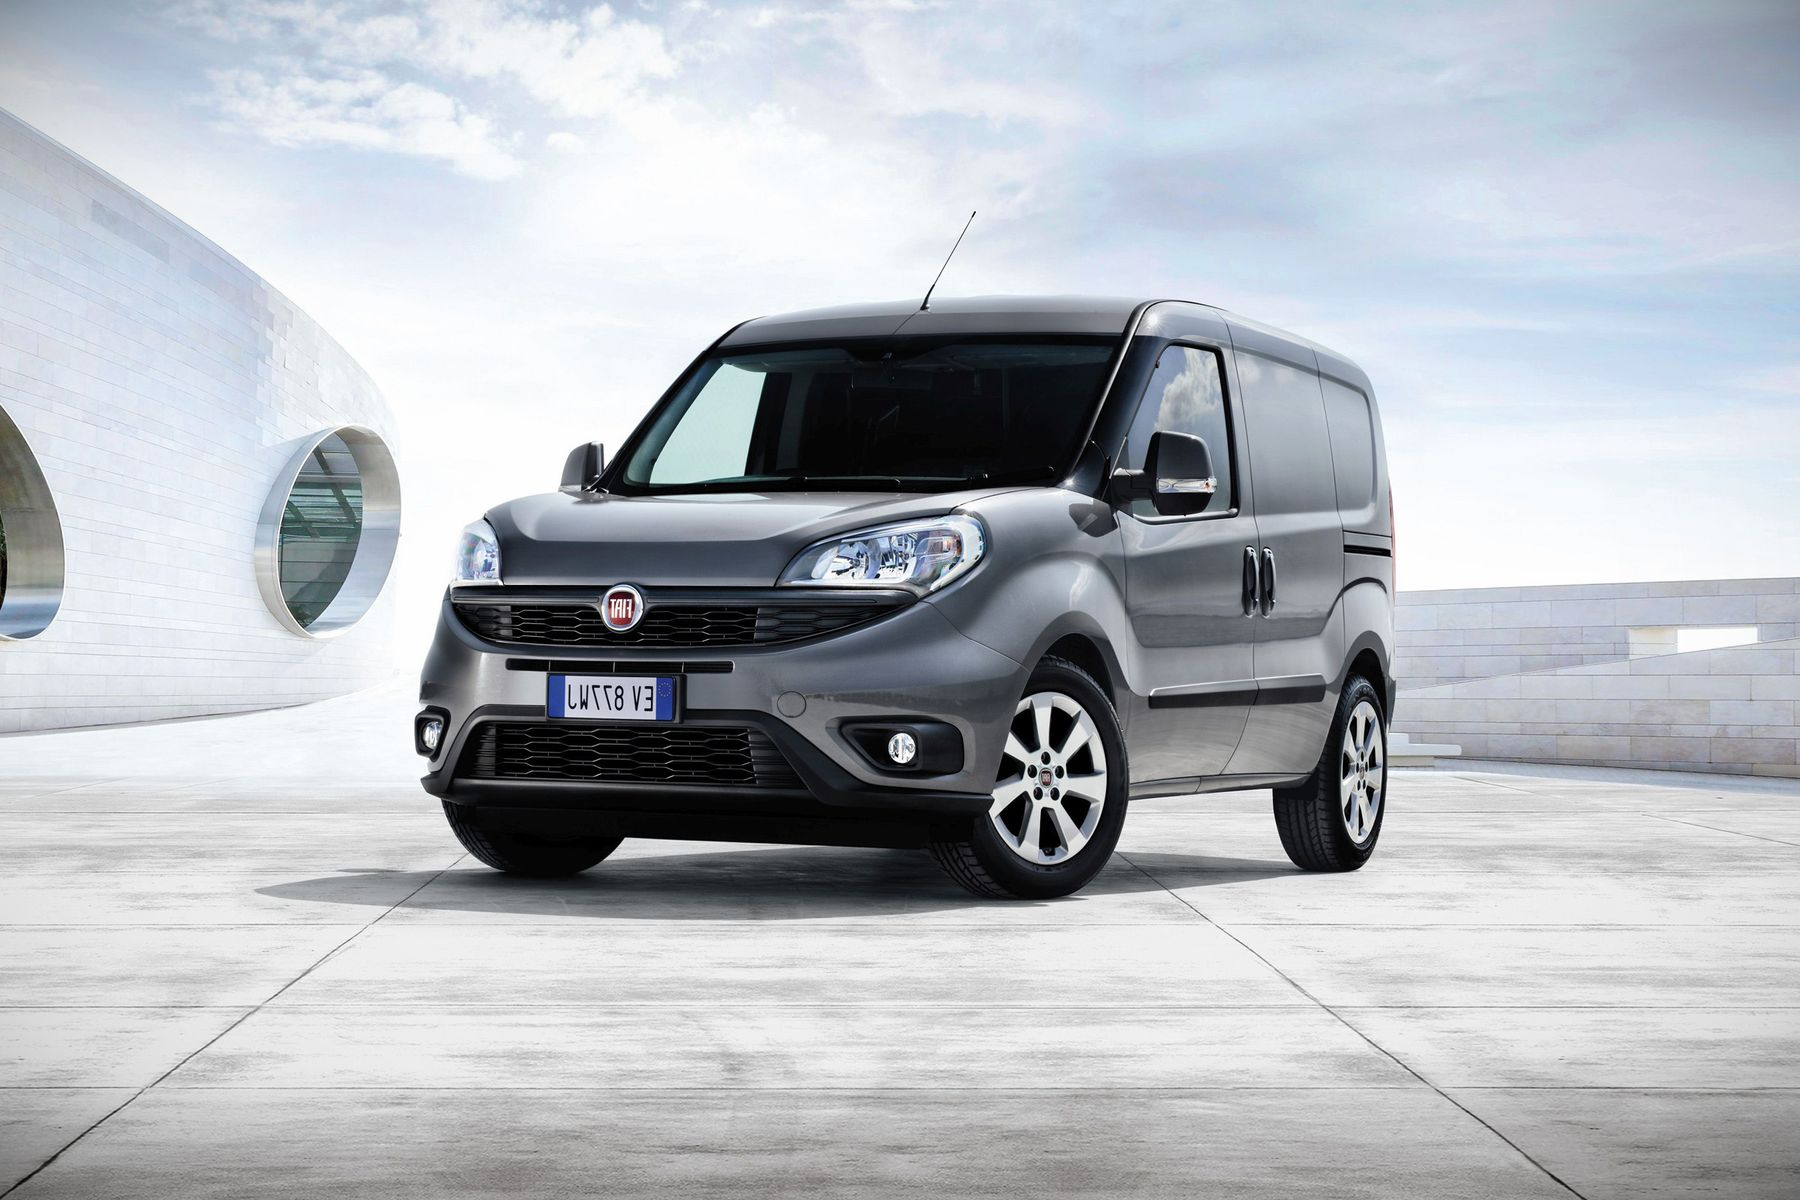 2017 fiat doblo van reviews soundproofing interior new suv price. Black Bedroom Furniture Sets. Home Design Ideas